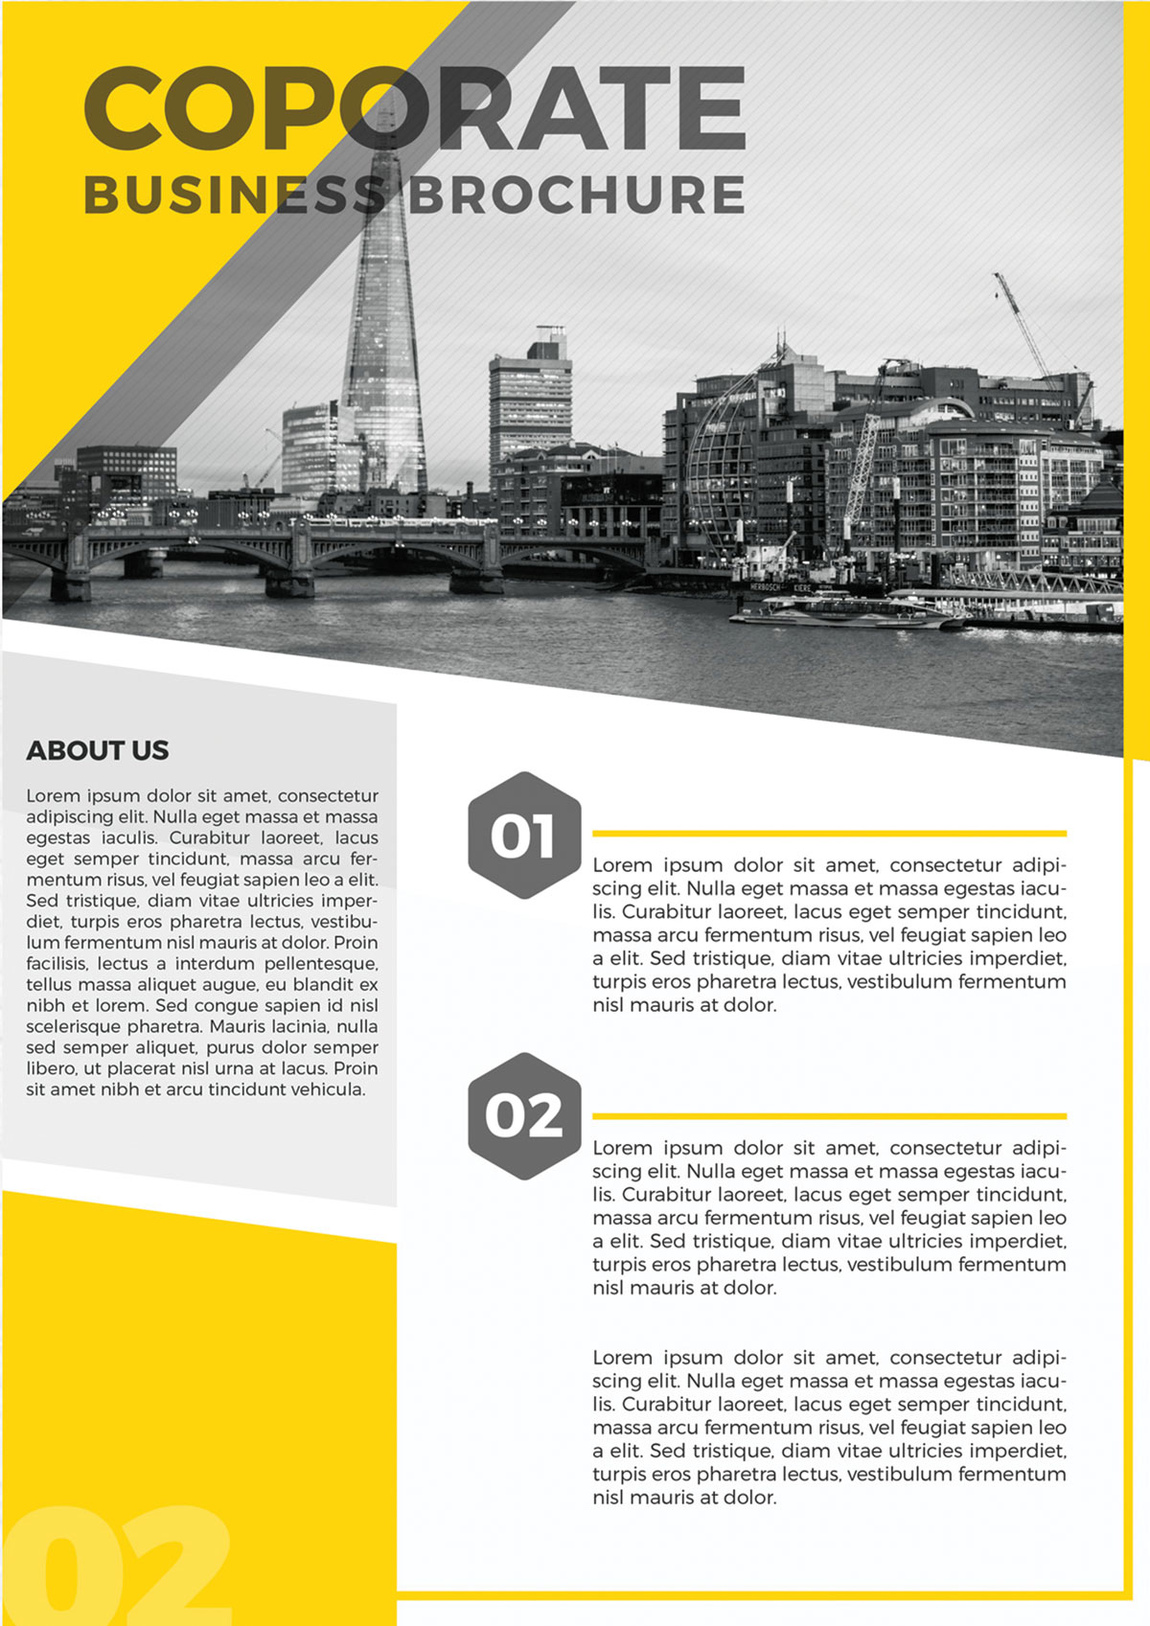 Yantram Studio - Real Estate Brochure Ideas By Real Estate Digital Branding Agency - New York, USA